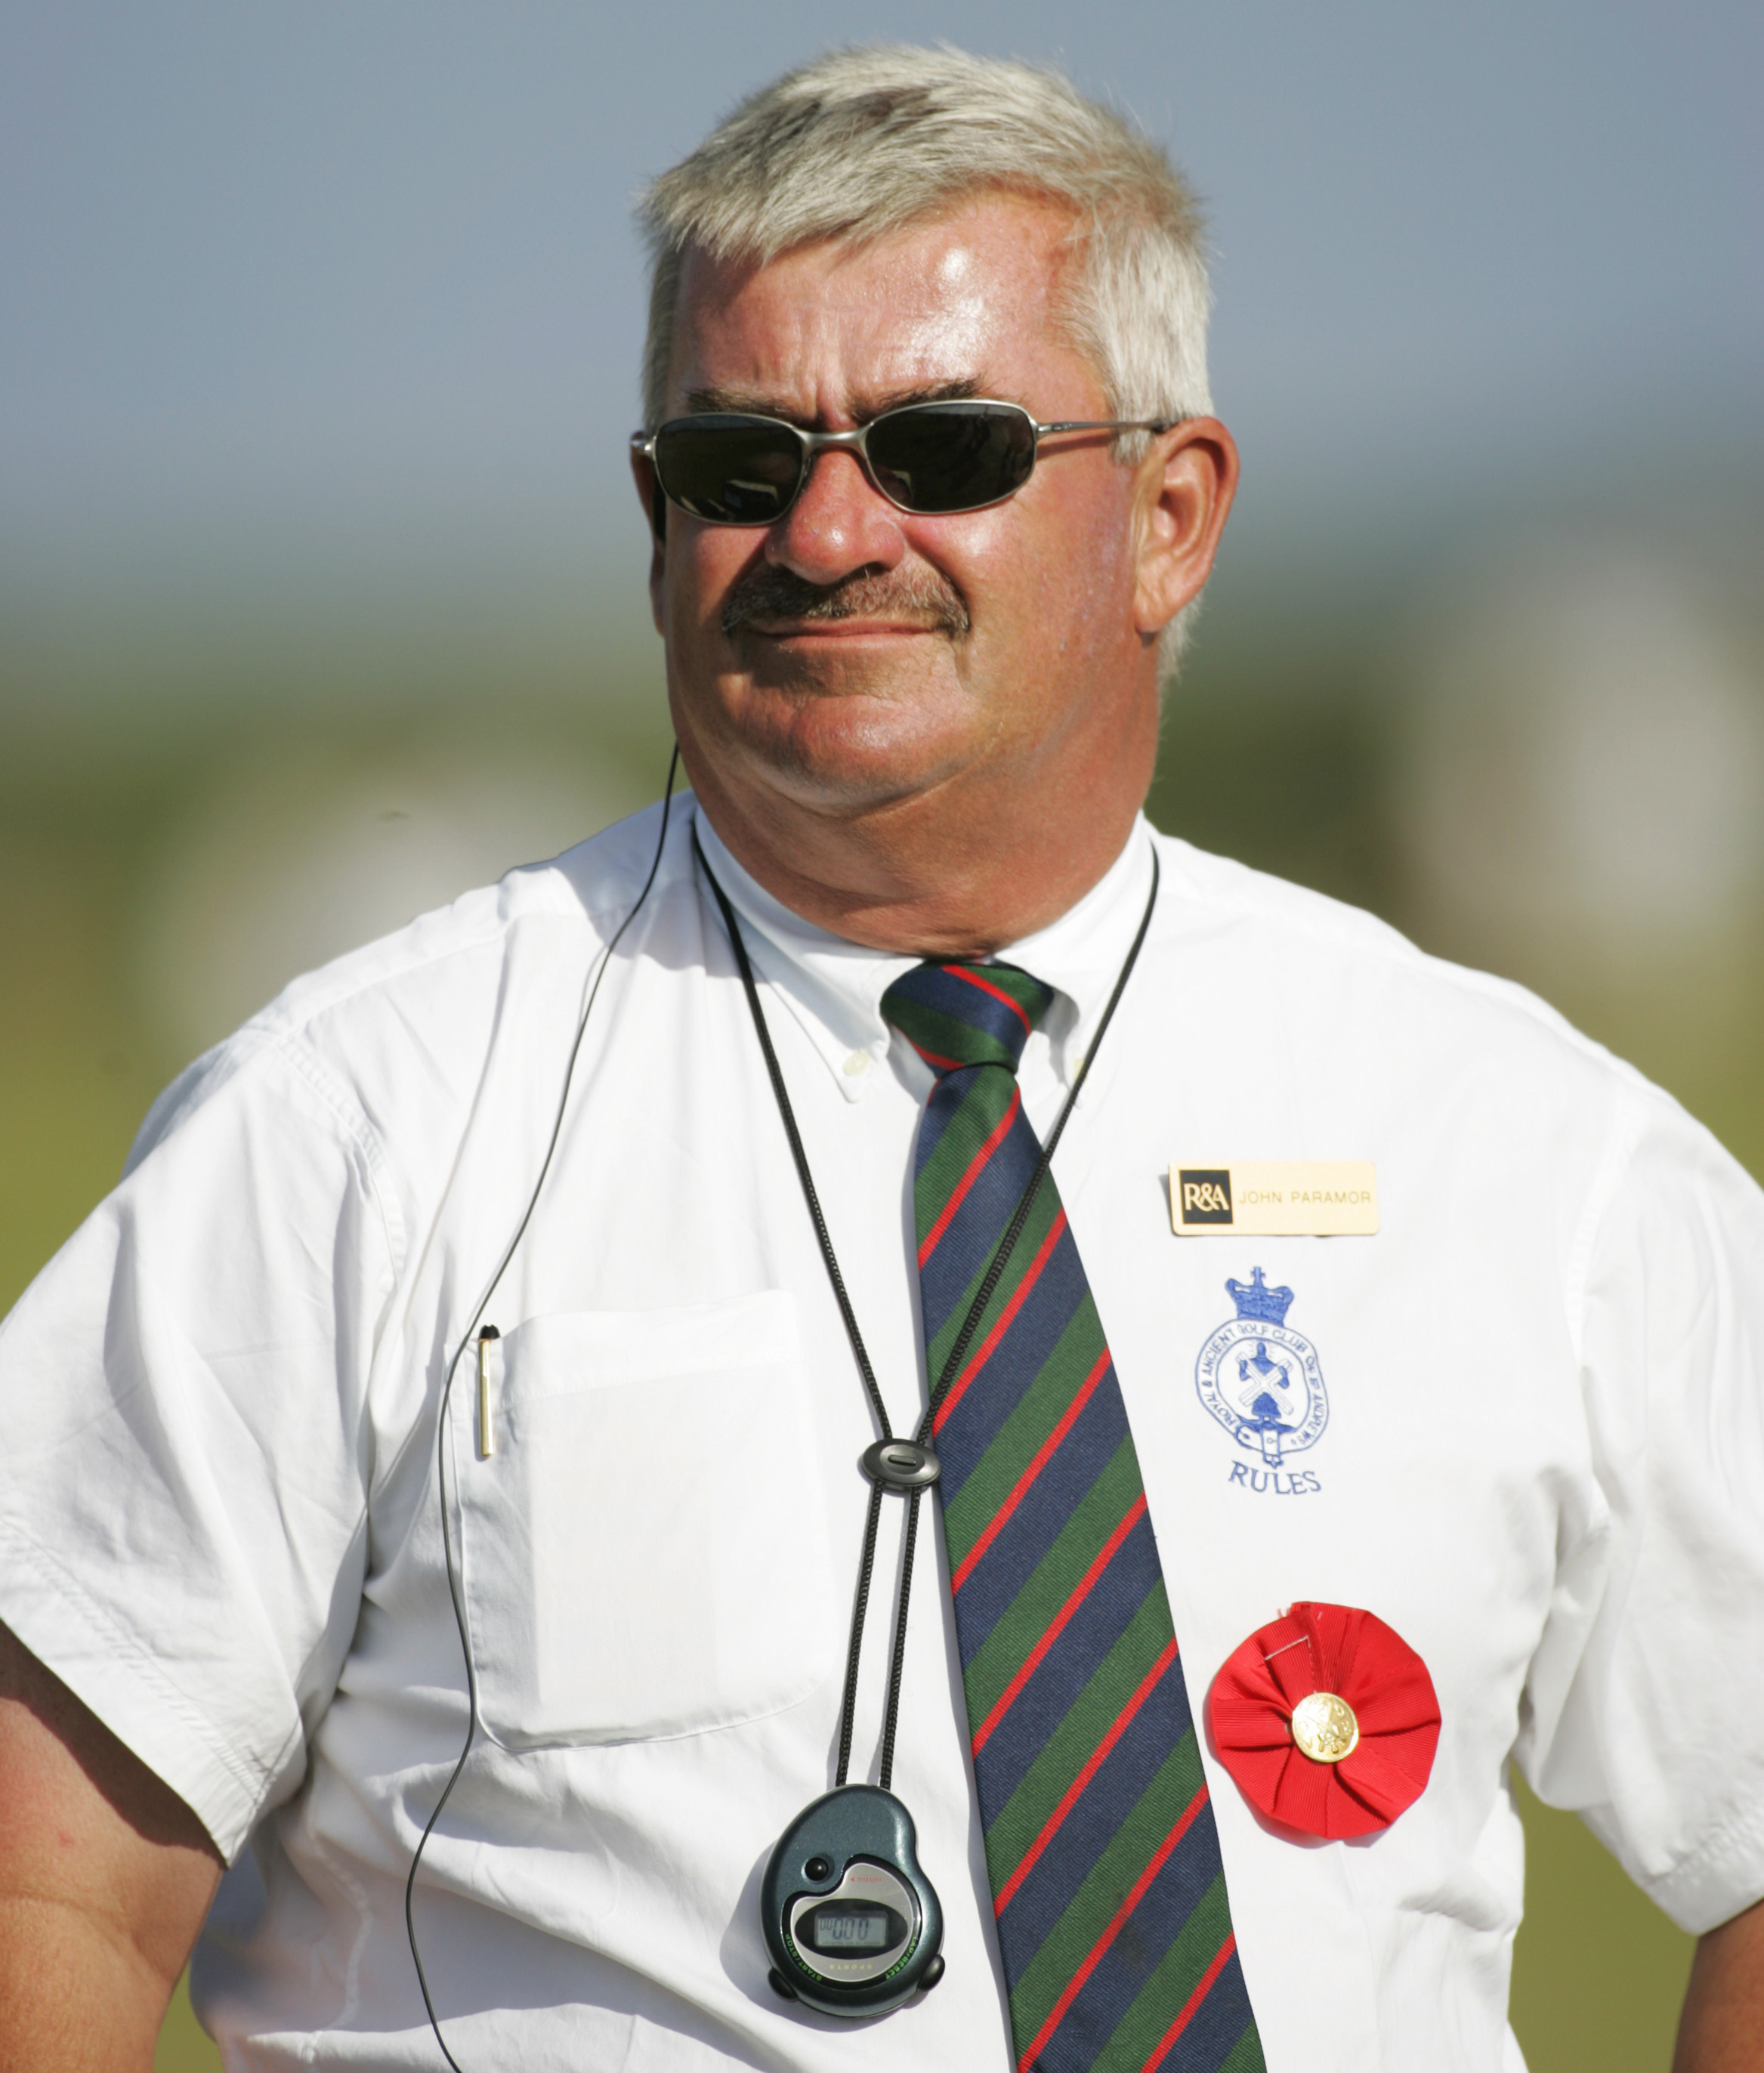 John Paramour is the European Tour's Chief Referee